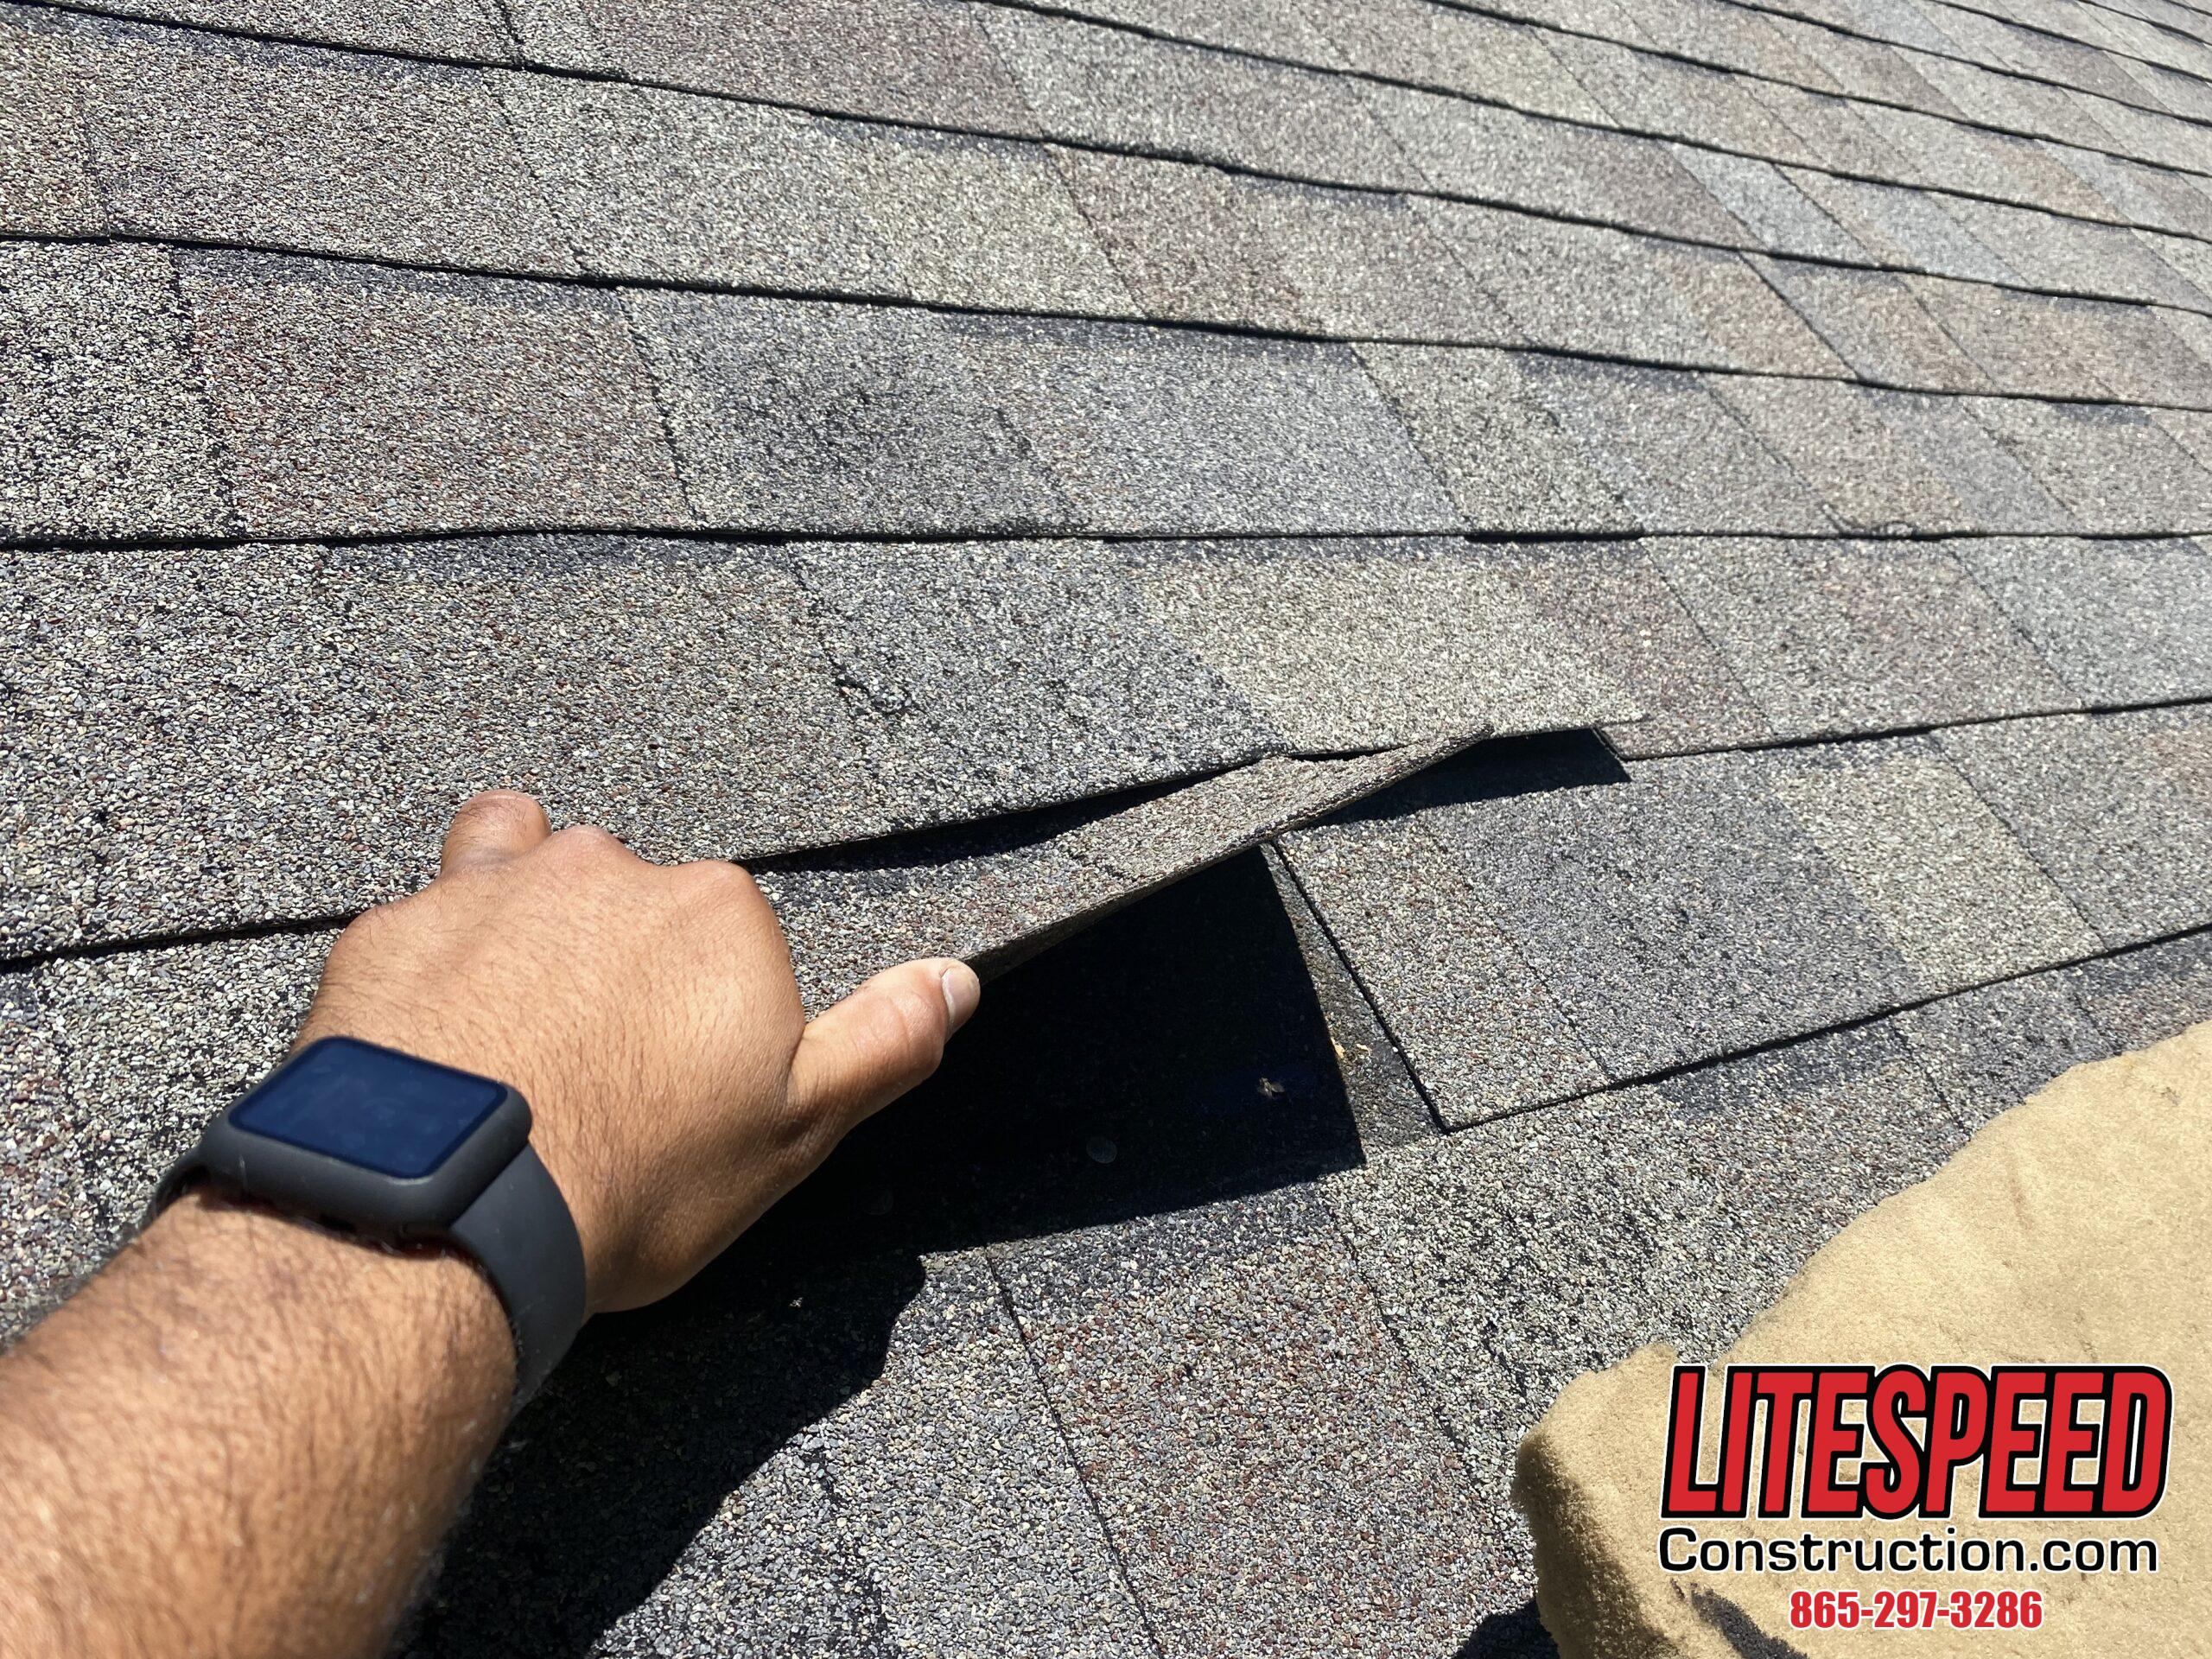 This is a picture of a shingle that can easily be pulled up